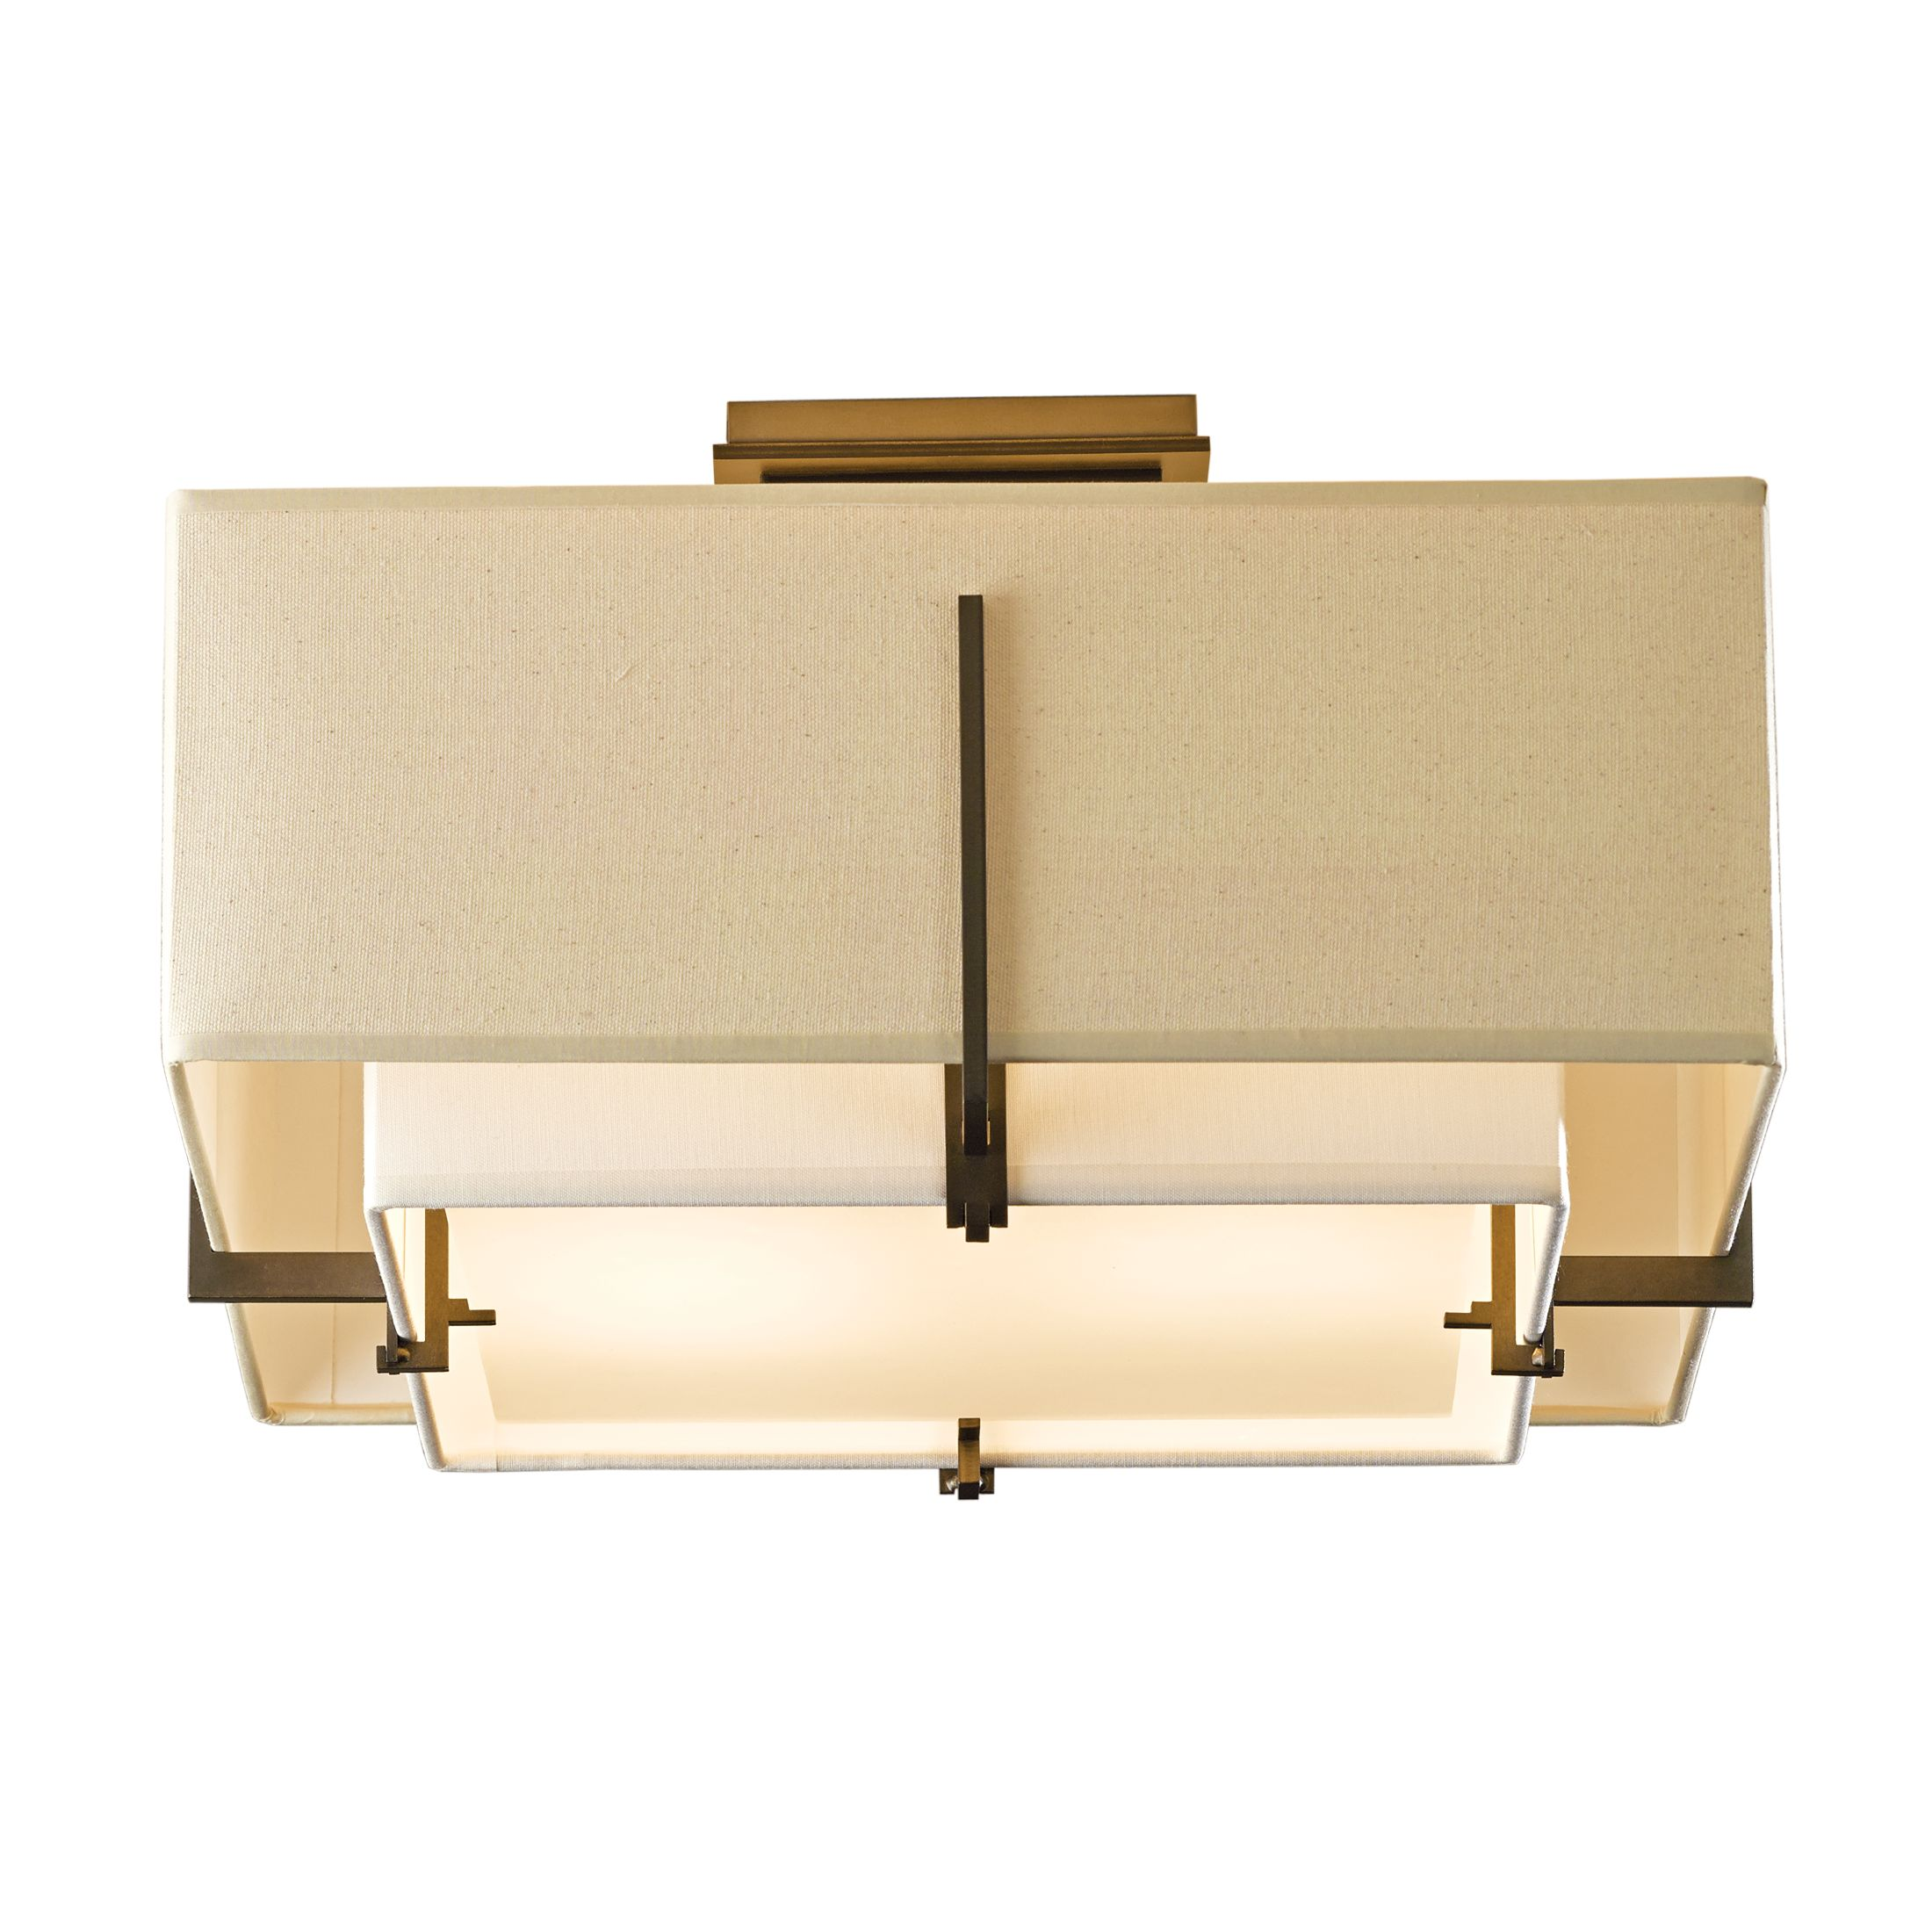 ceiling lamp light pendant rectangle geometric fixture wind lamps bronze archerlamps lighting